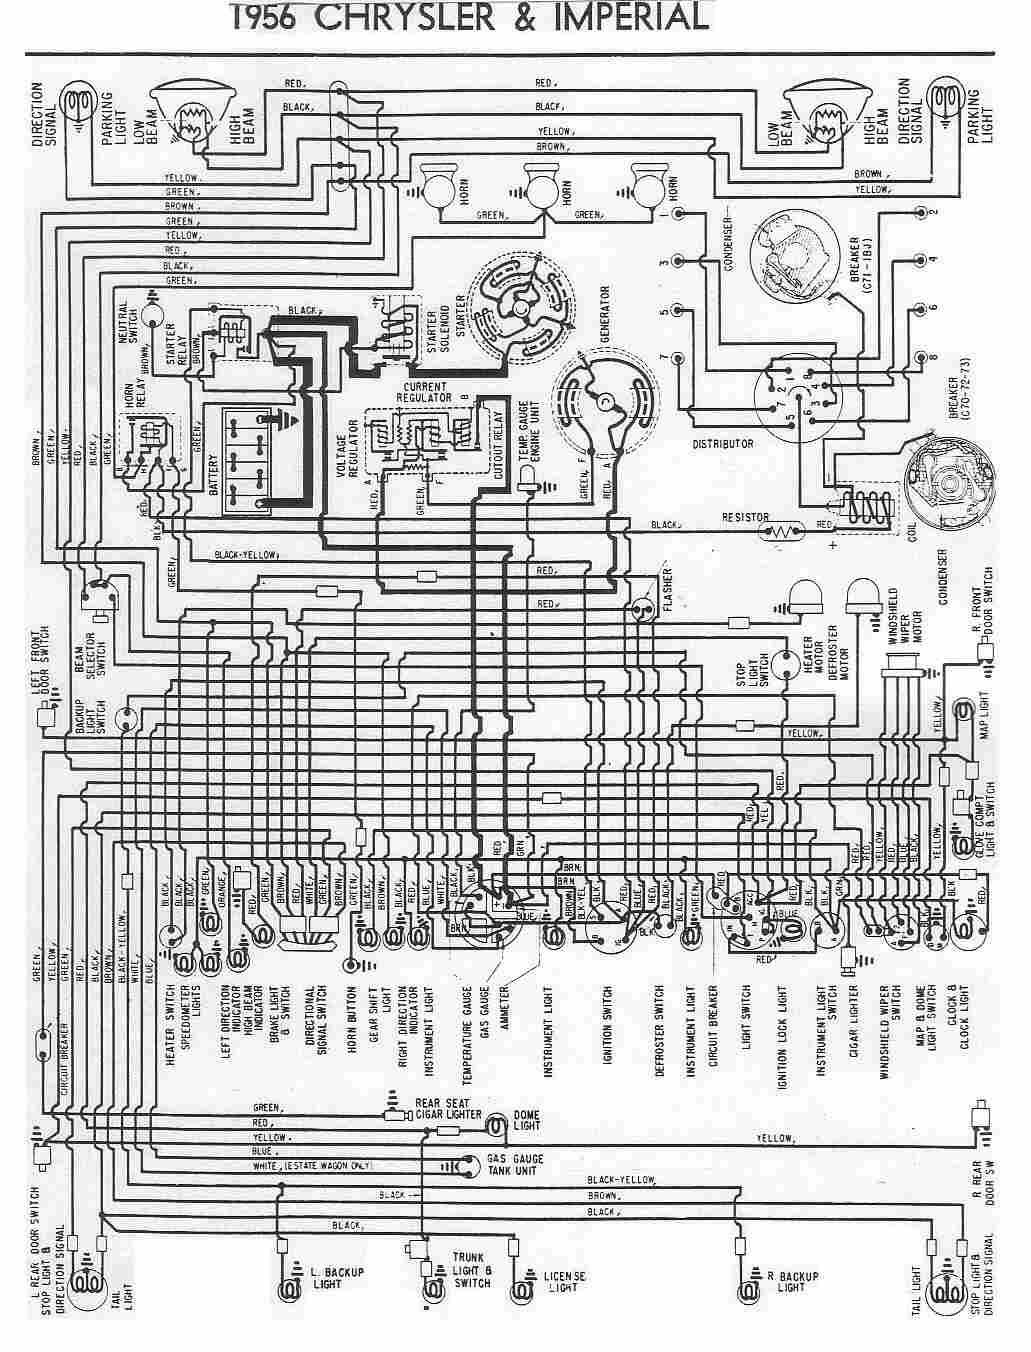 1956 Chrysler Wiring Diagram - Pollak 7 Pin Flat Wire Diagram for Wiring  Diagram SchematicsWiring Diagram Schematics